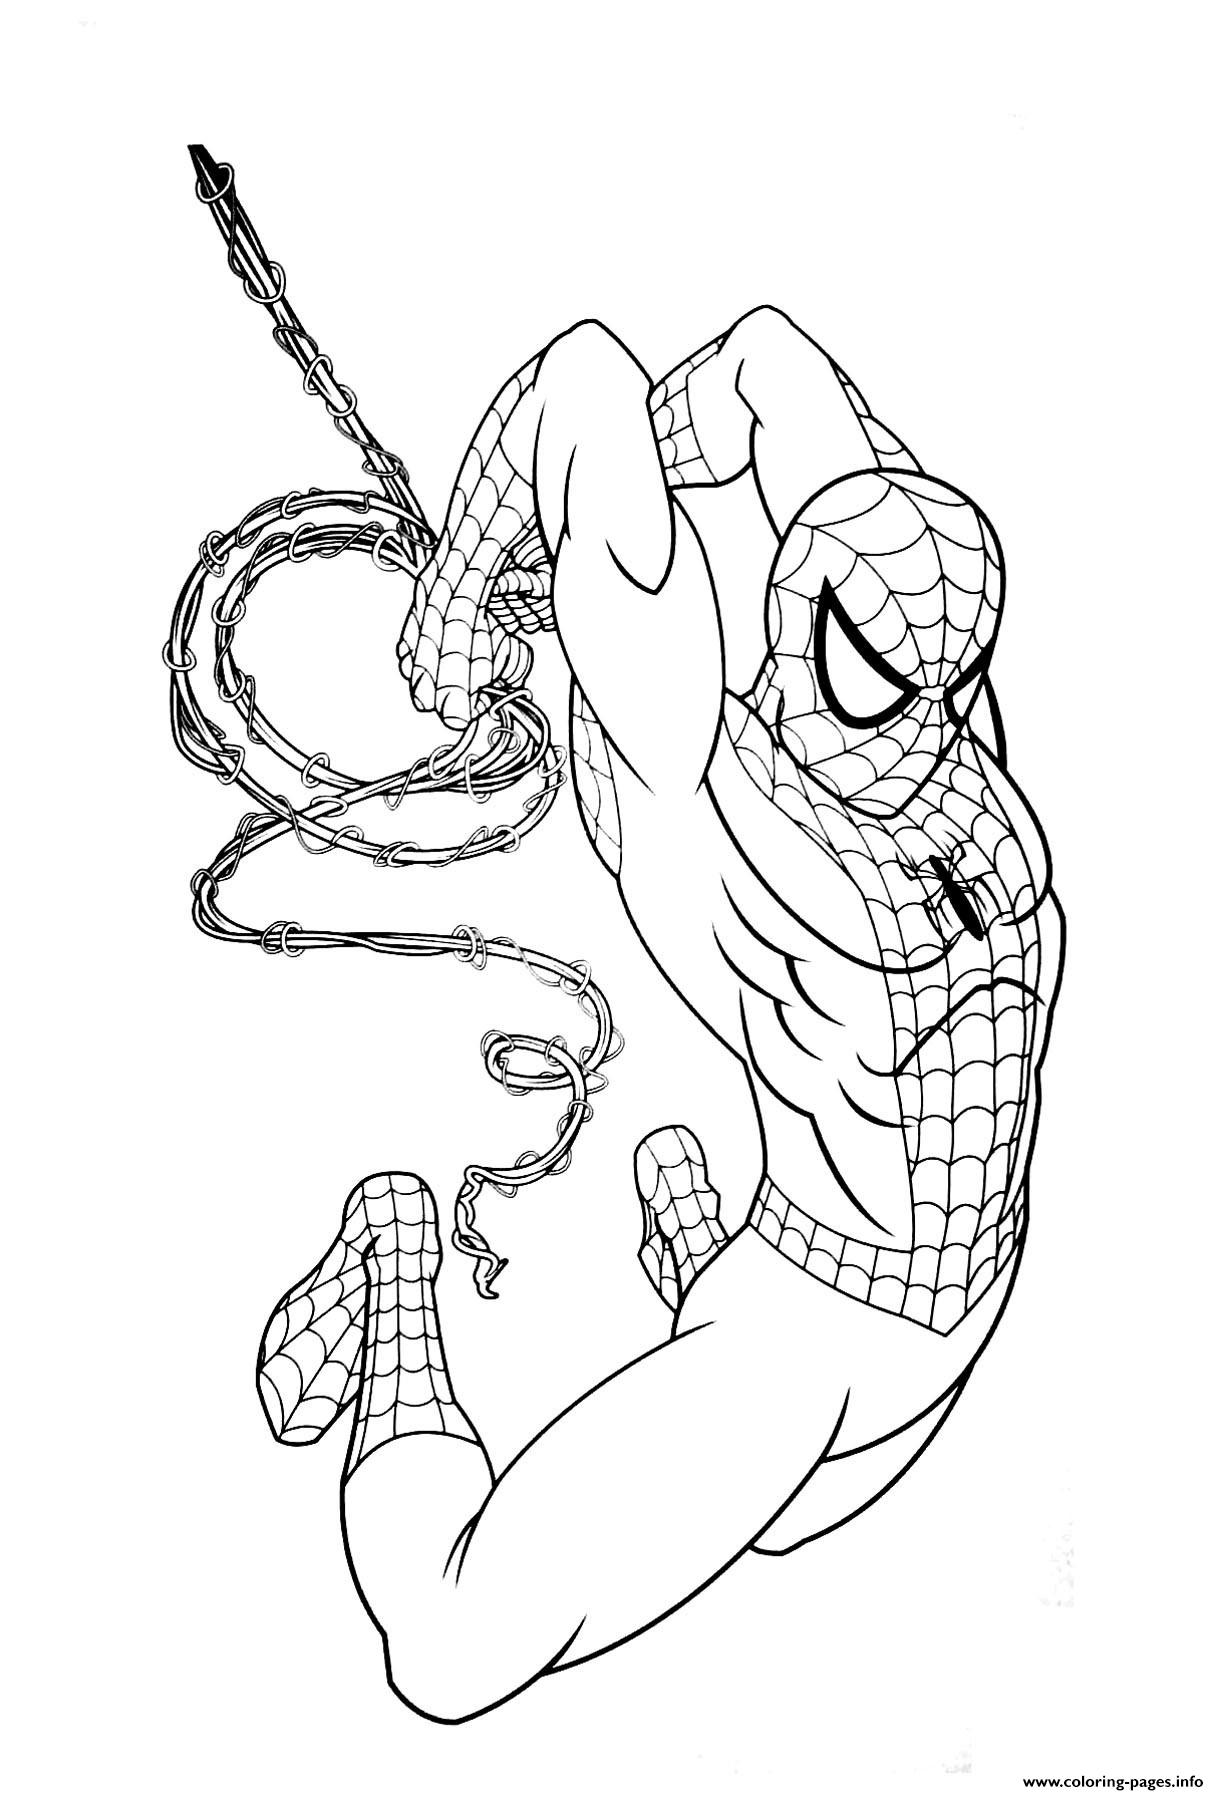 avengers endgame coloring pictures avengers endgame coloring page endgame pictures avengers coloring